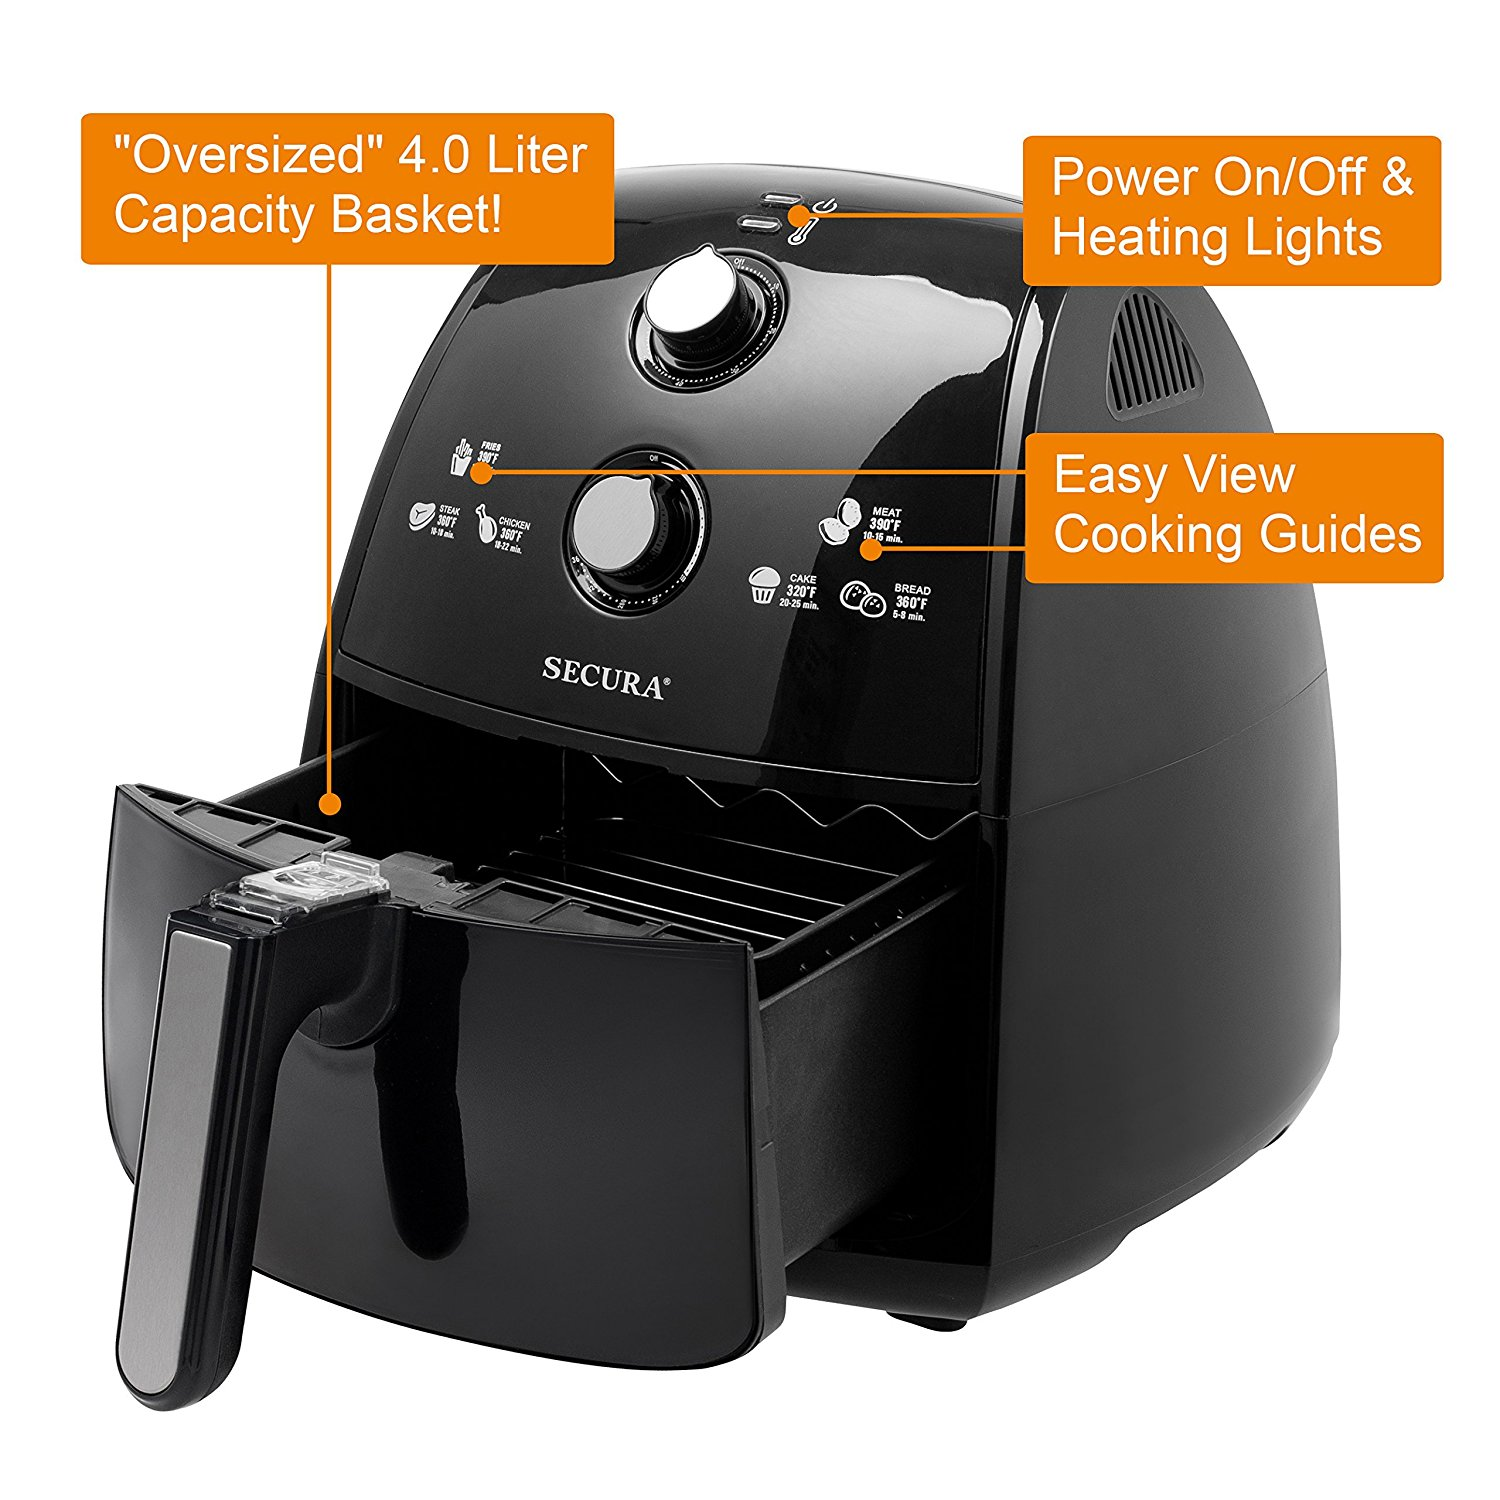 Secura Air Fryer Review: Best Budget Air Fryer in the